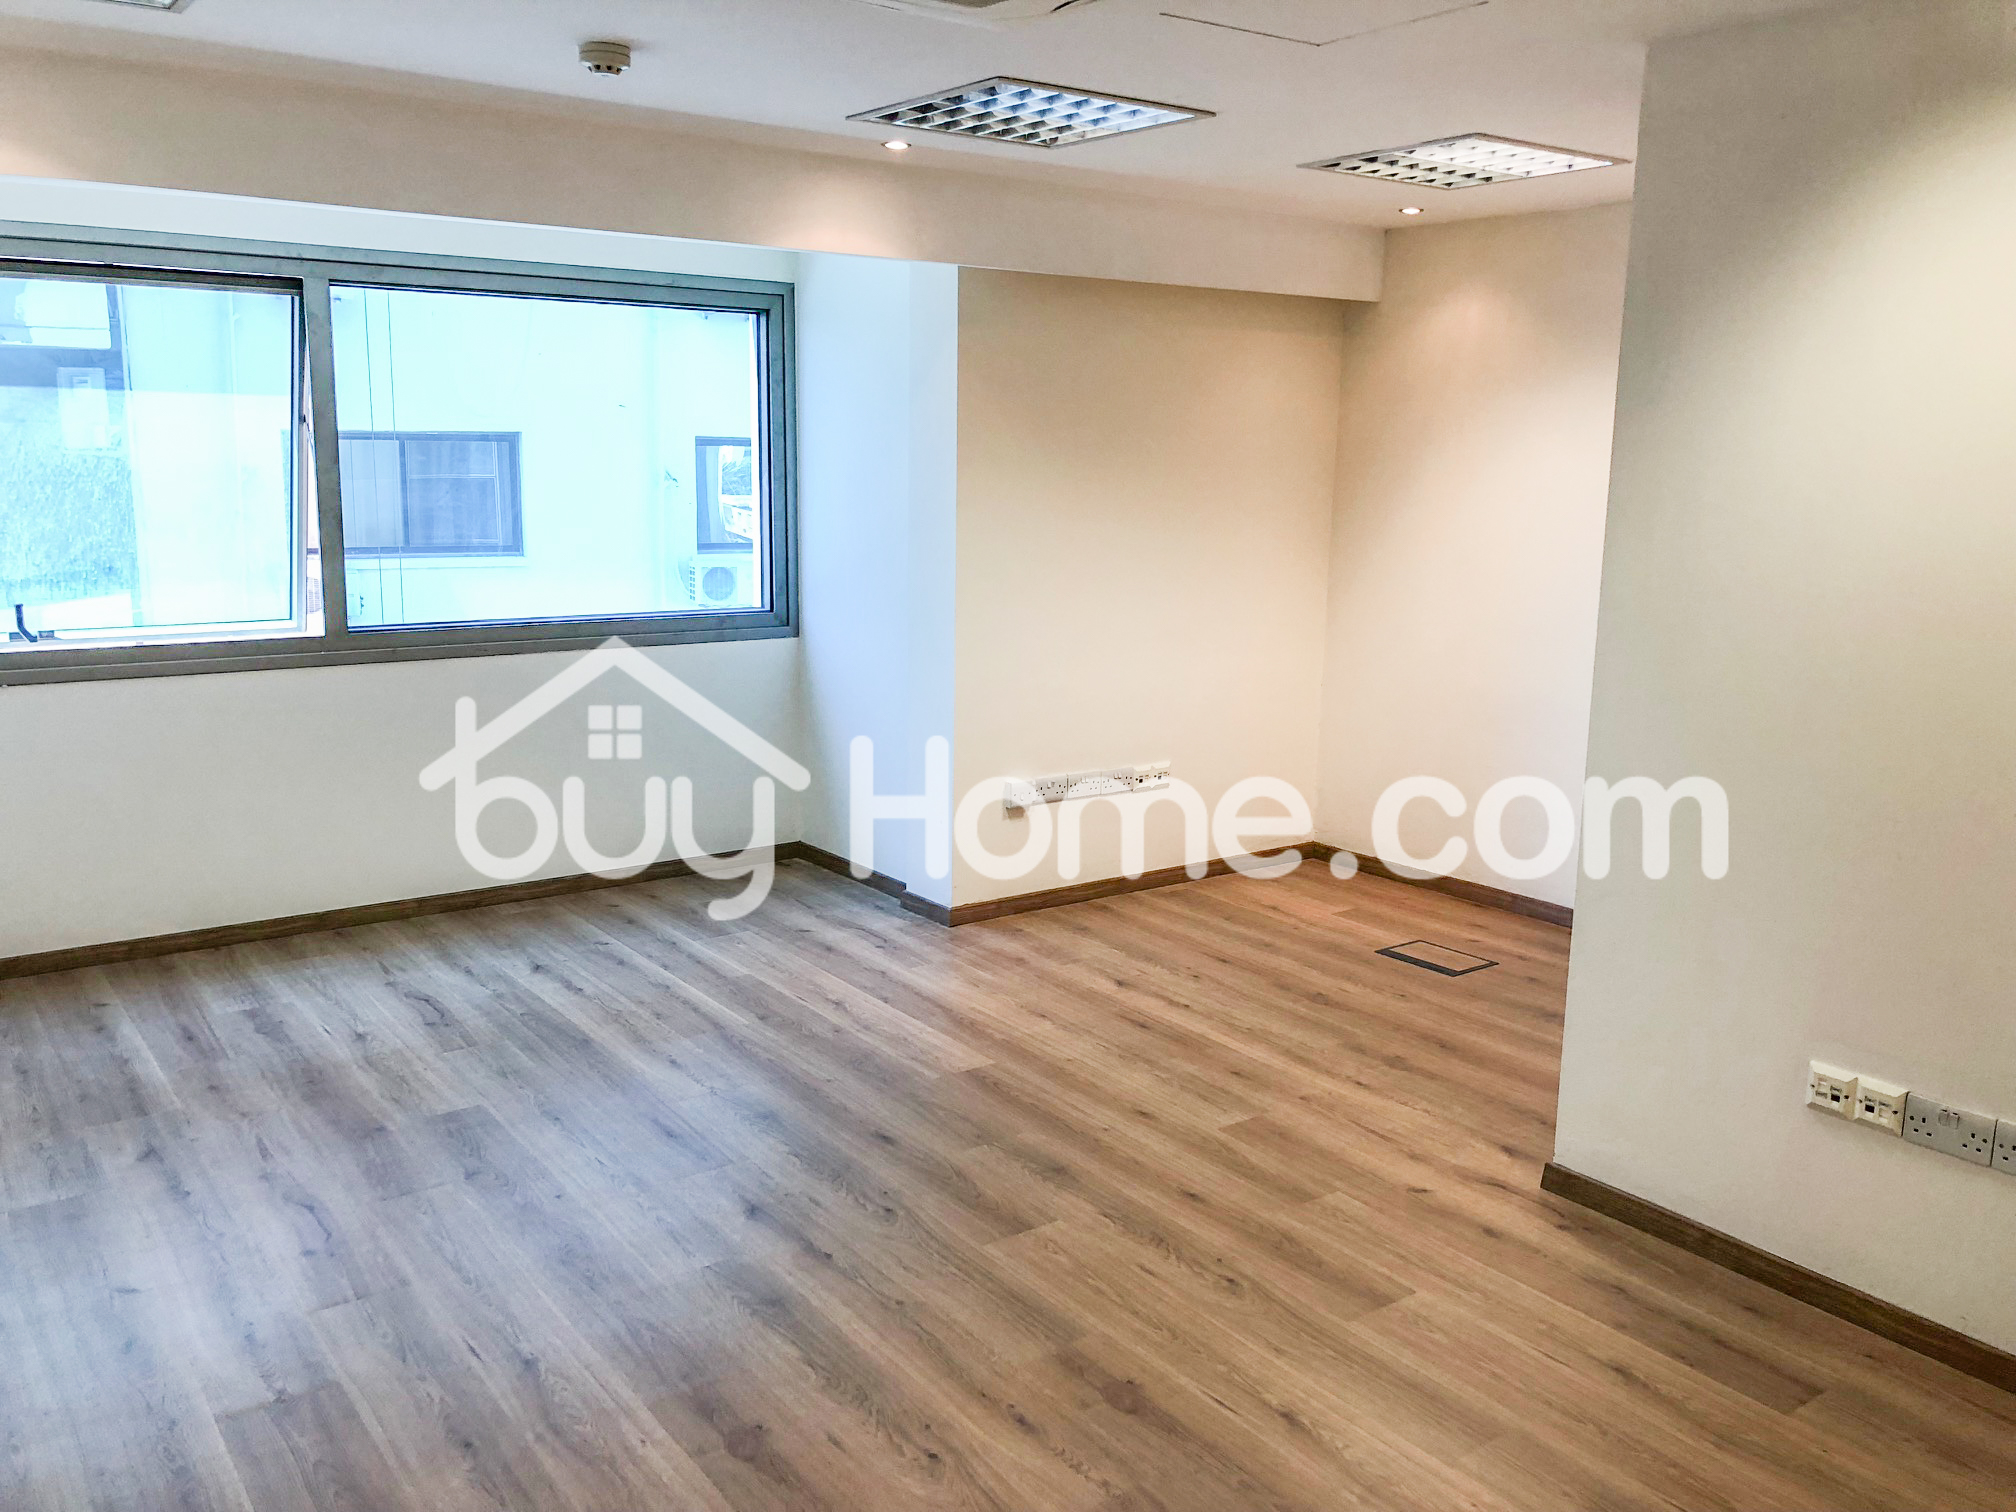 Office Space For Rent | BuyHome